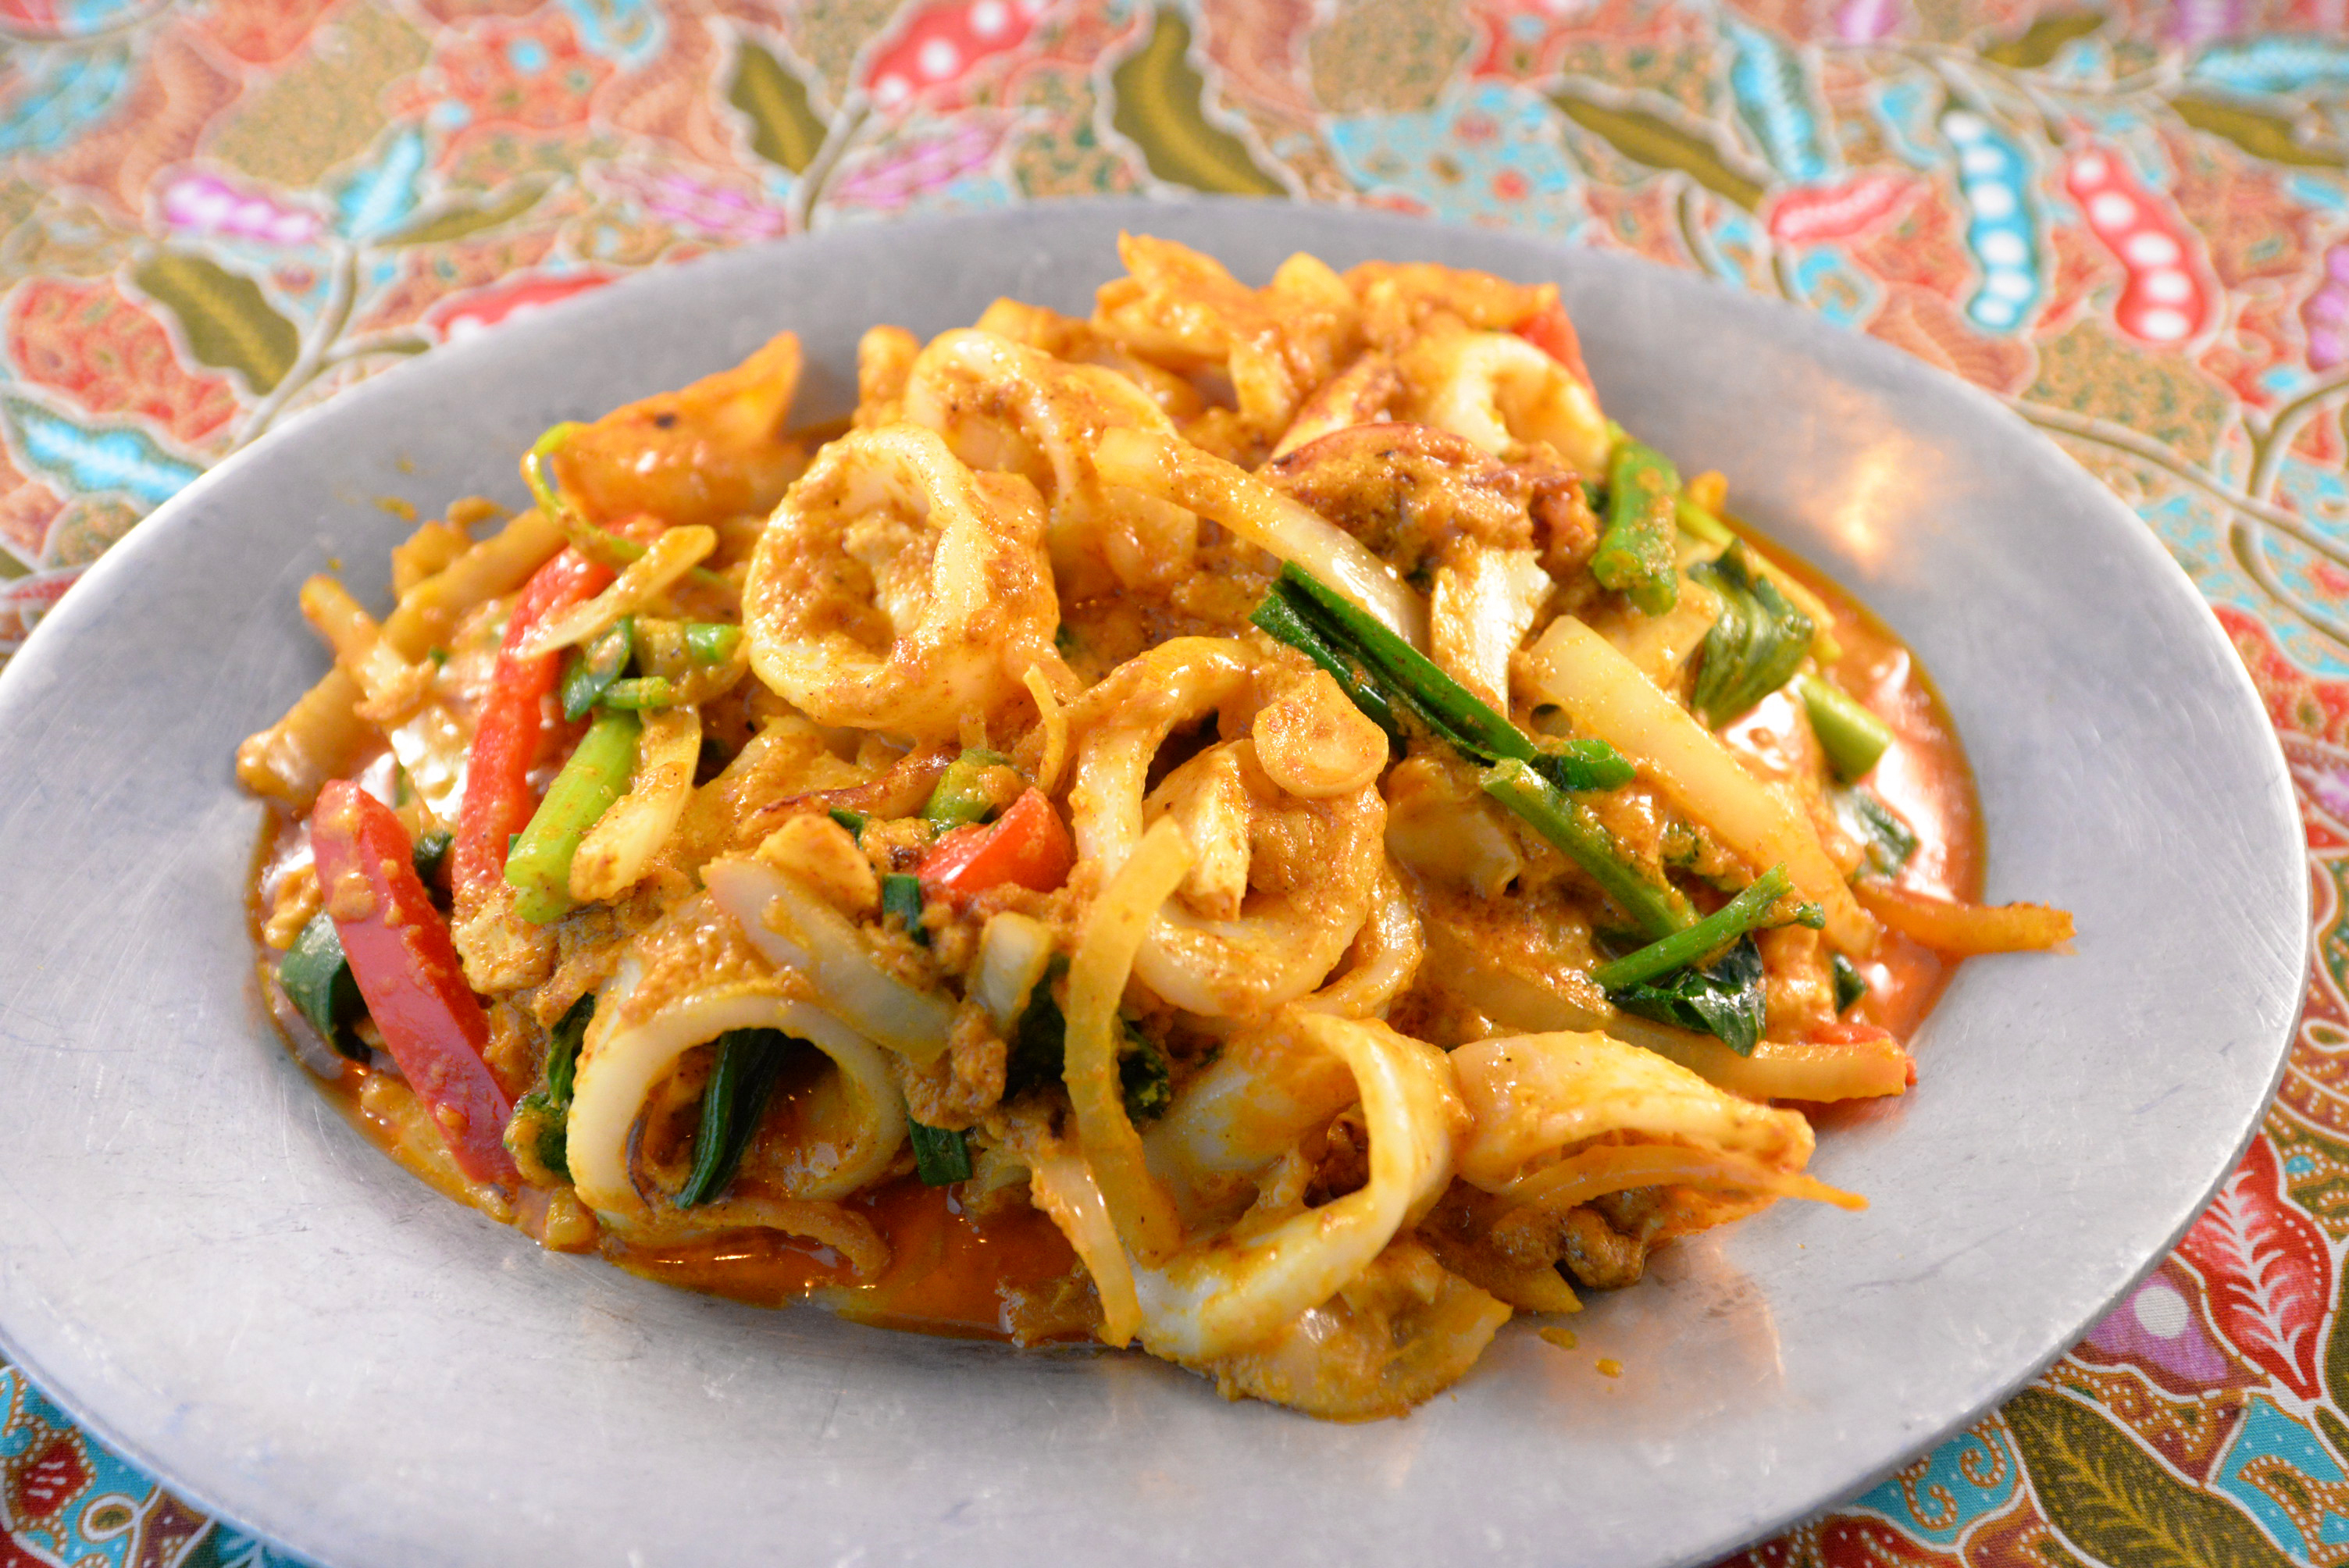 melonyzz - 10 Must-try Thai Dishes - Stir fried squid with salted duck eggs